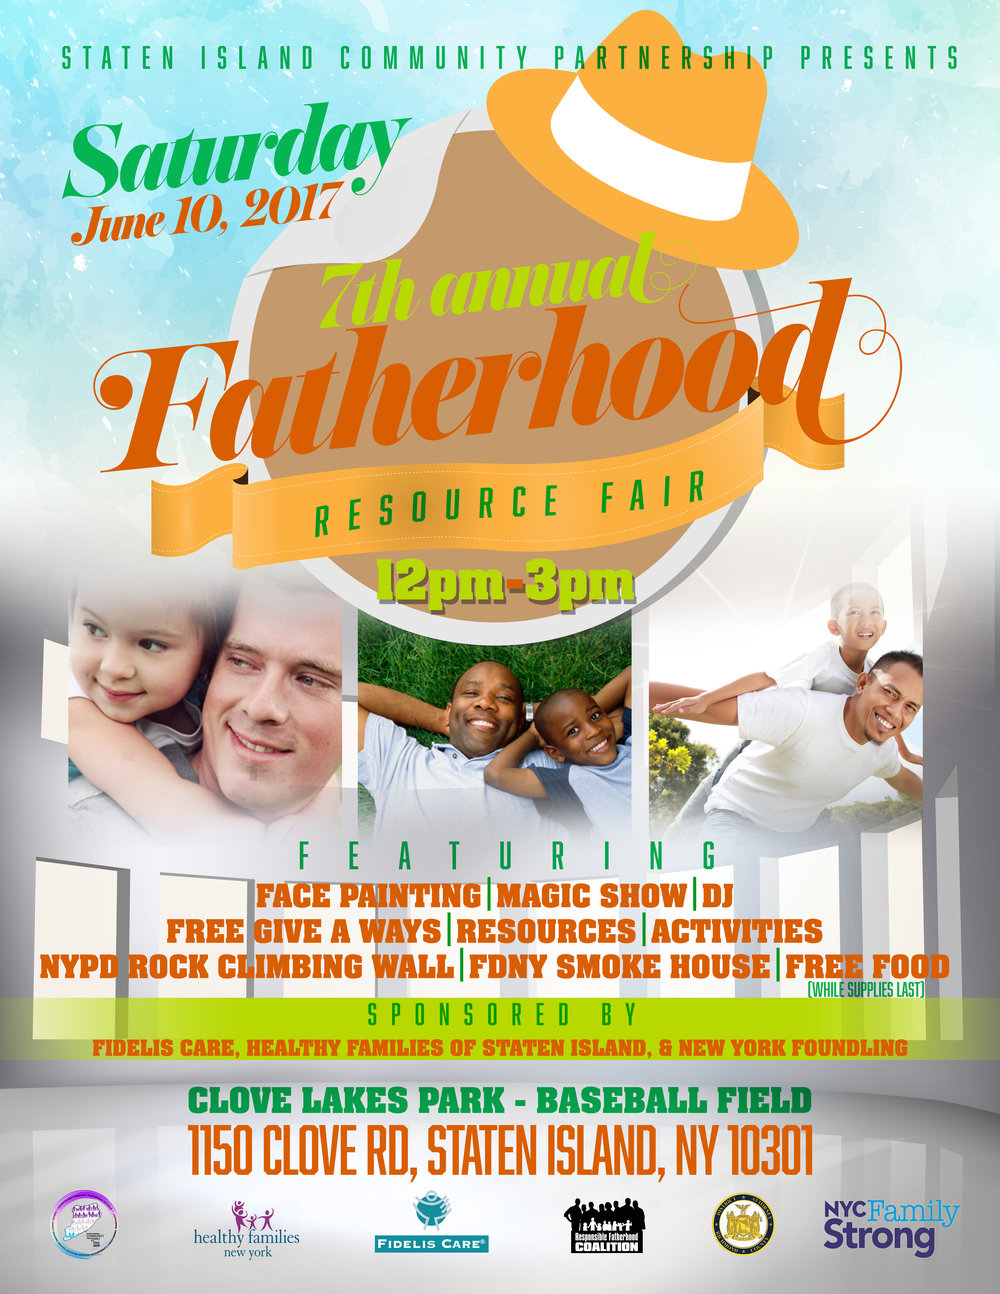 7th Annual Fatherhood-Flyer.jpg